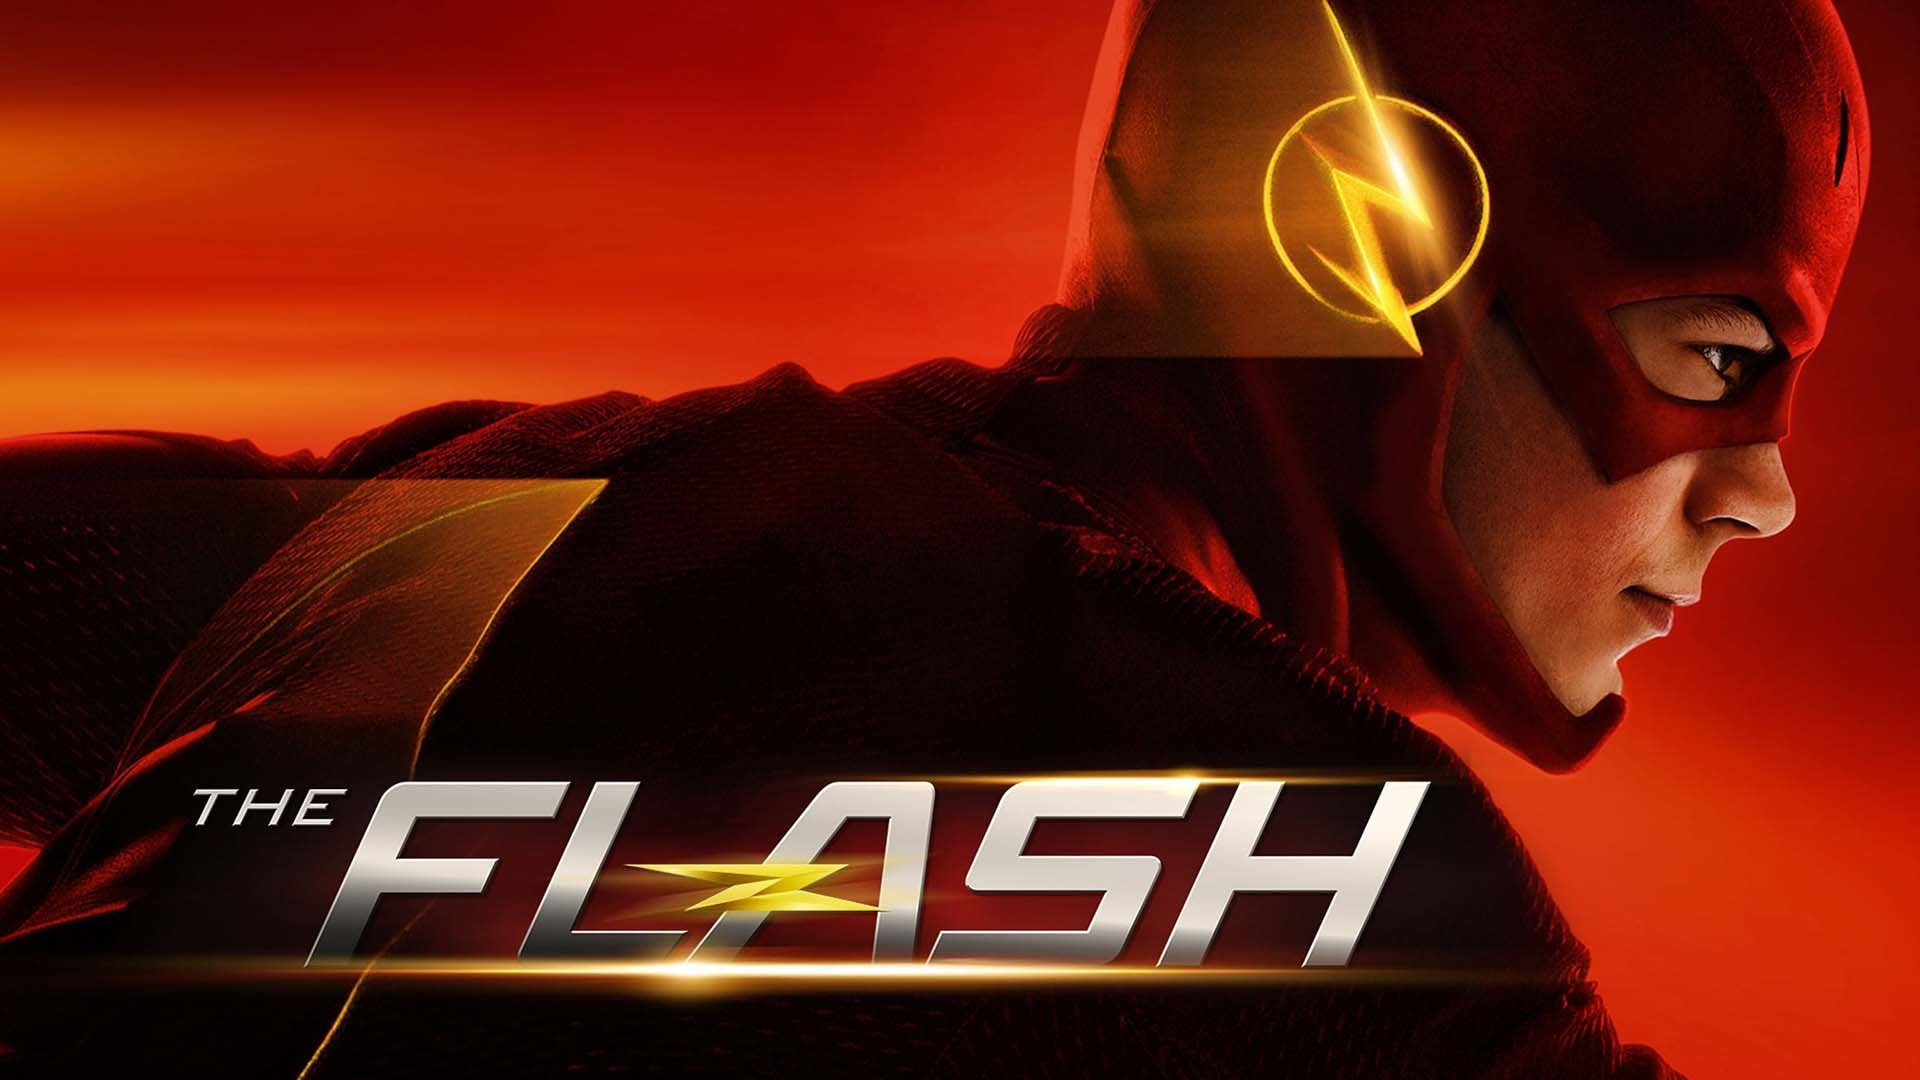 The Flash (2014) HD Wallpaper   Background Image   1920x1080